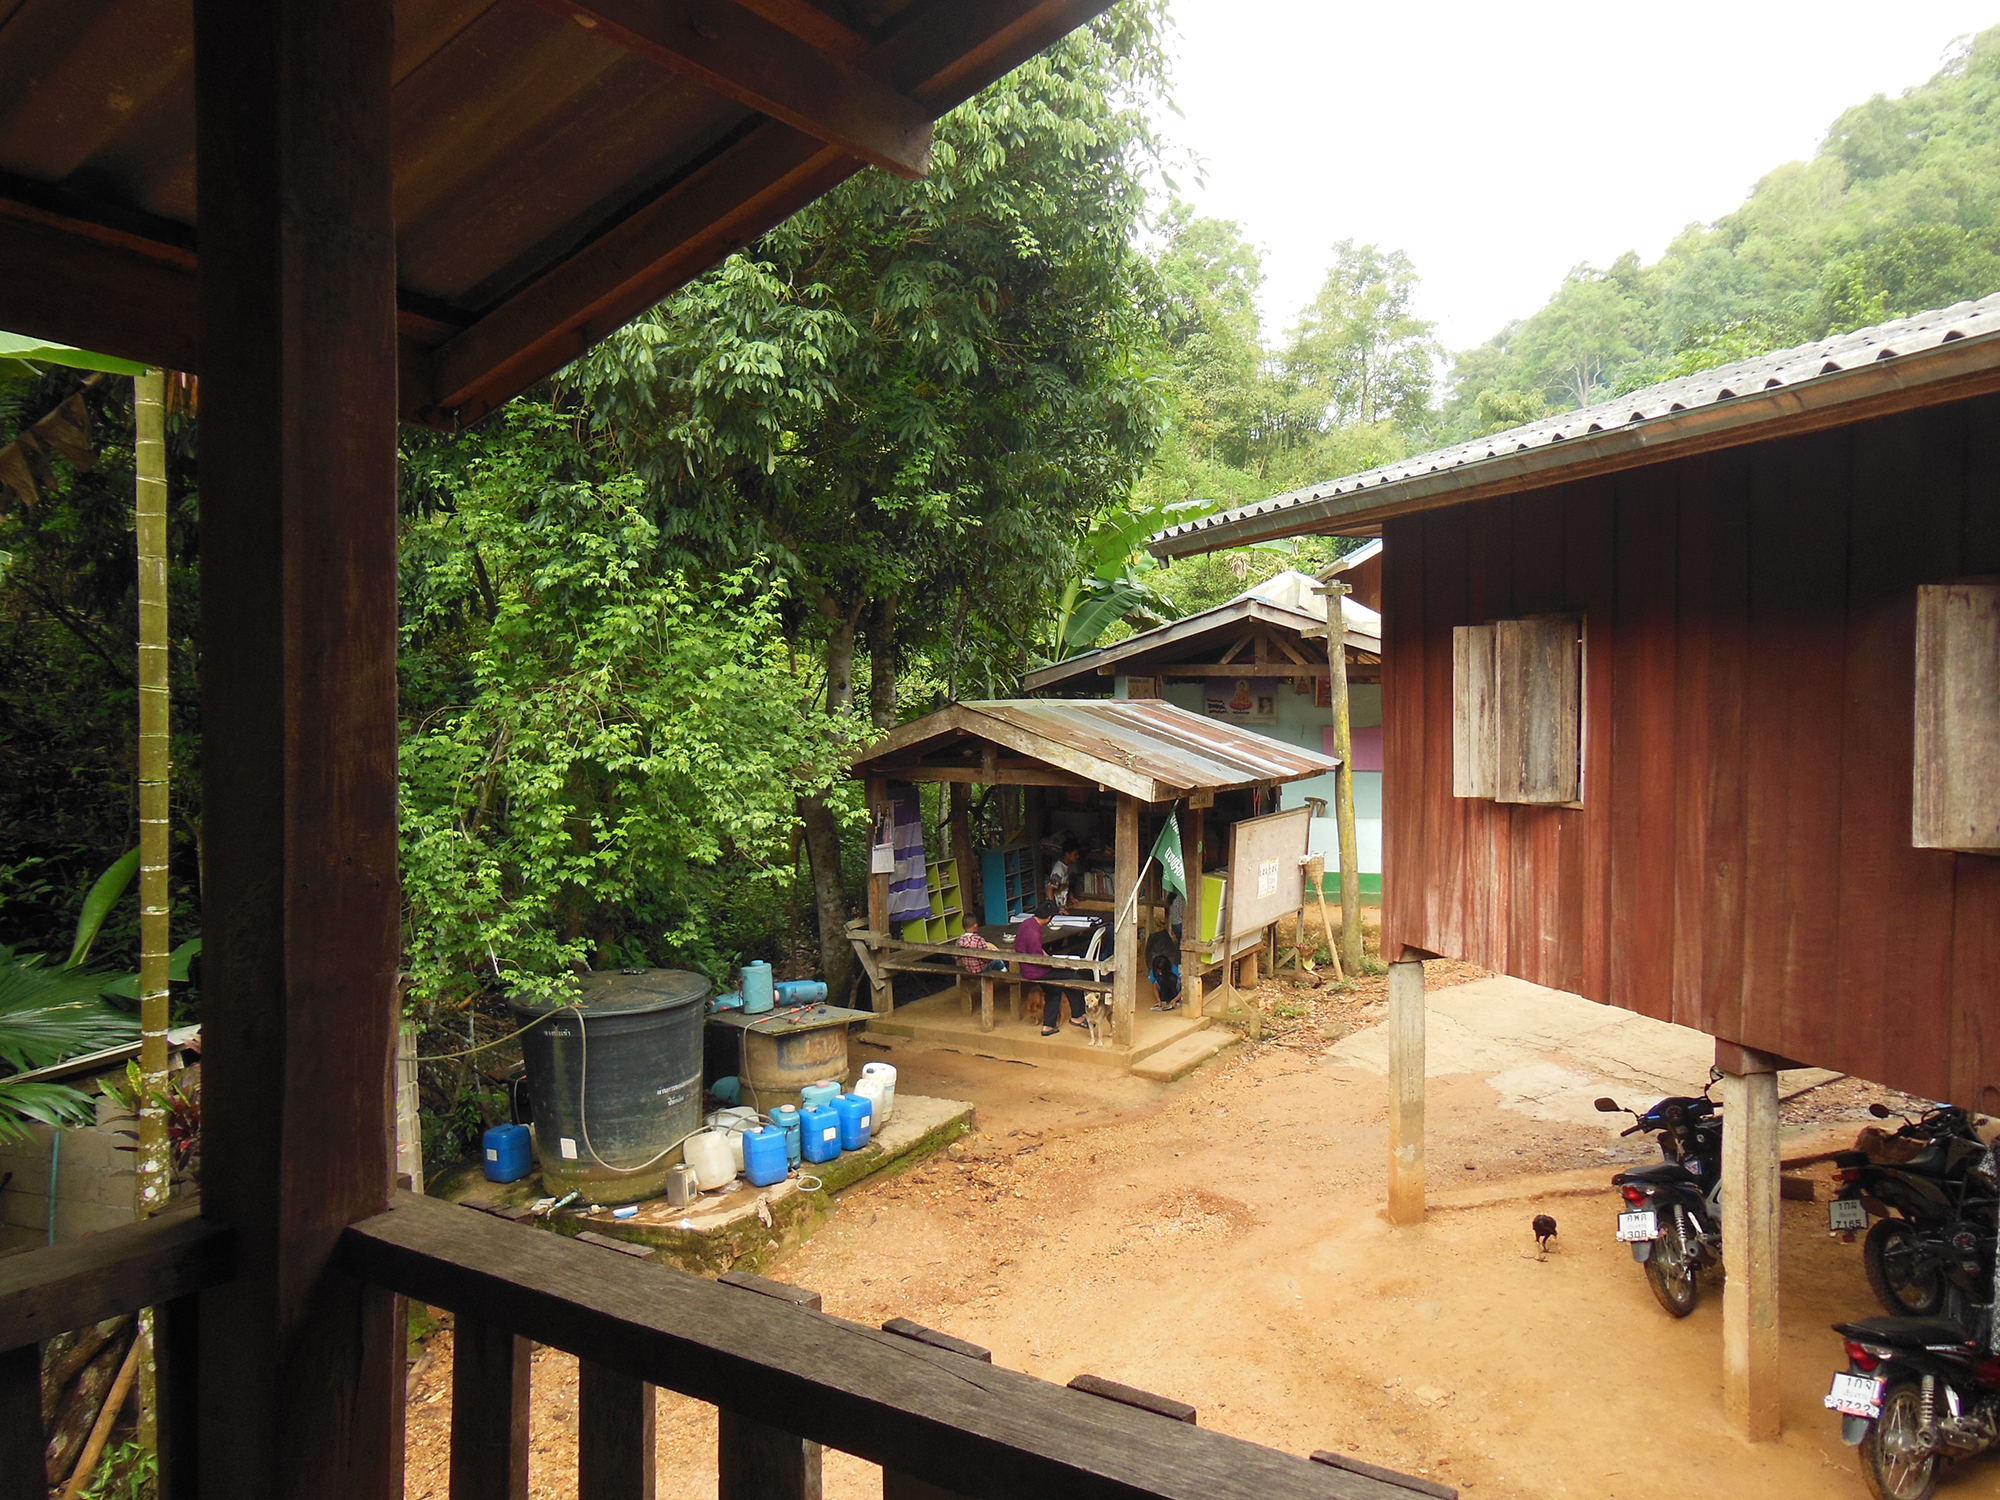 View from the balcony: The library sits next to the school in the neatly maintained village of Hin Lad Nai. Copyright: Pernilla Malmer.